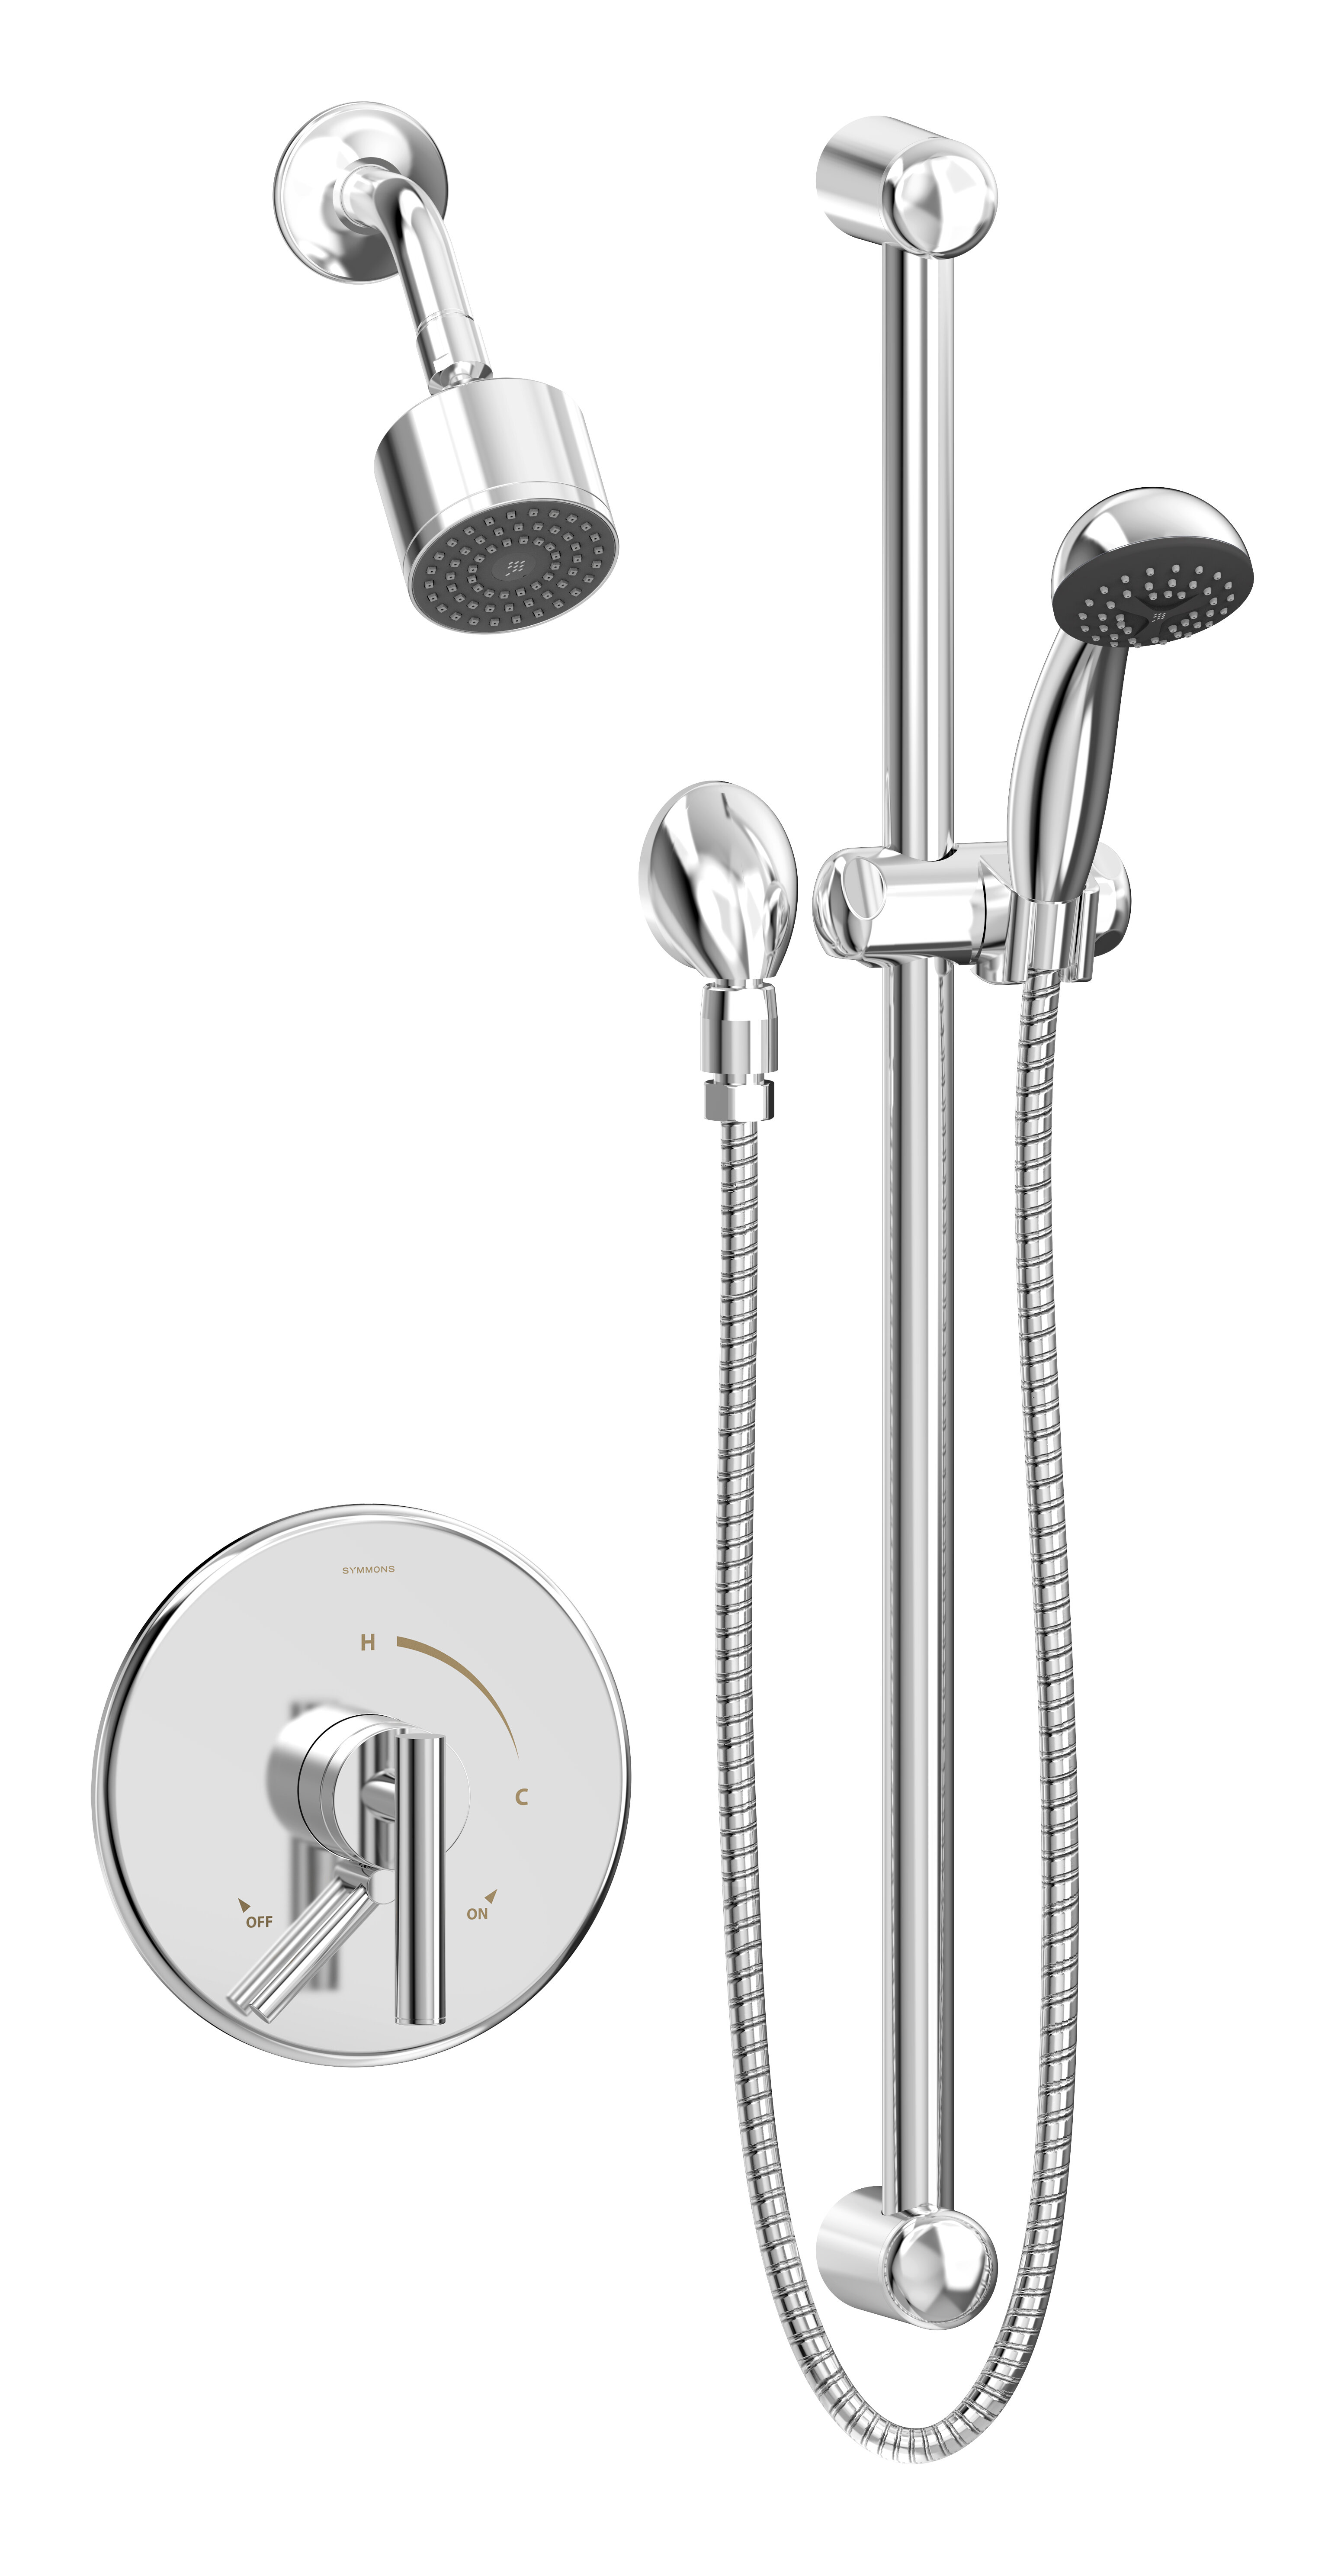 Symmons Dia Thermostatic Shower Faucet Wayfair